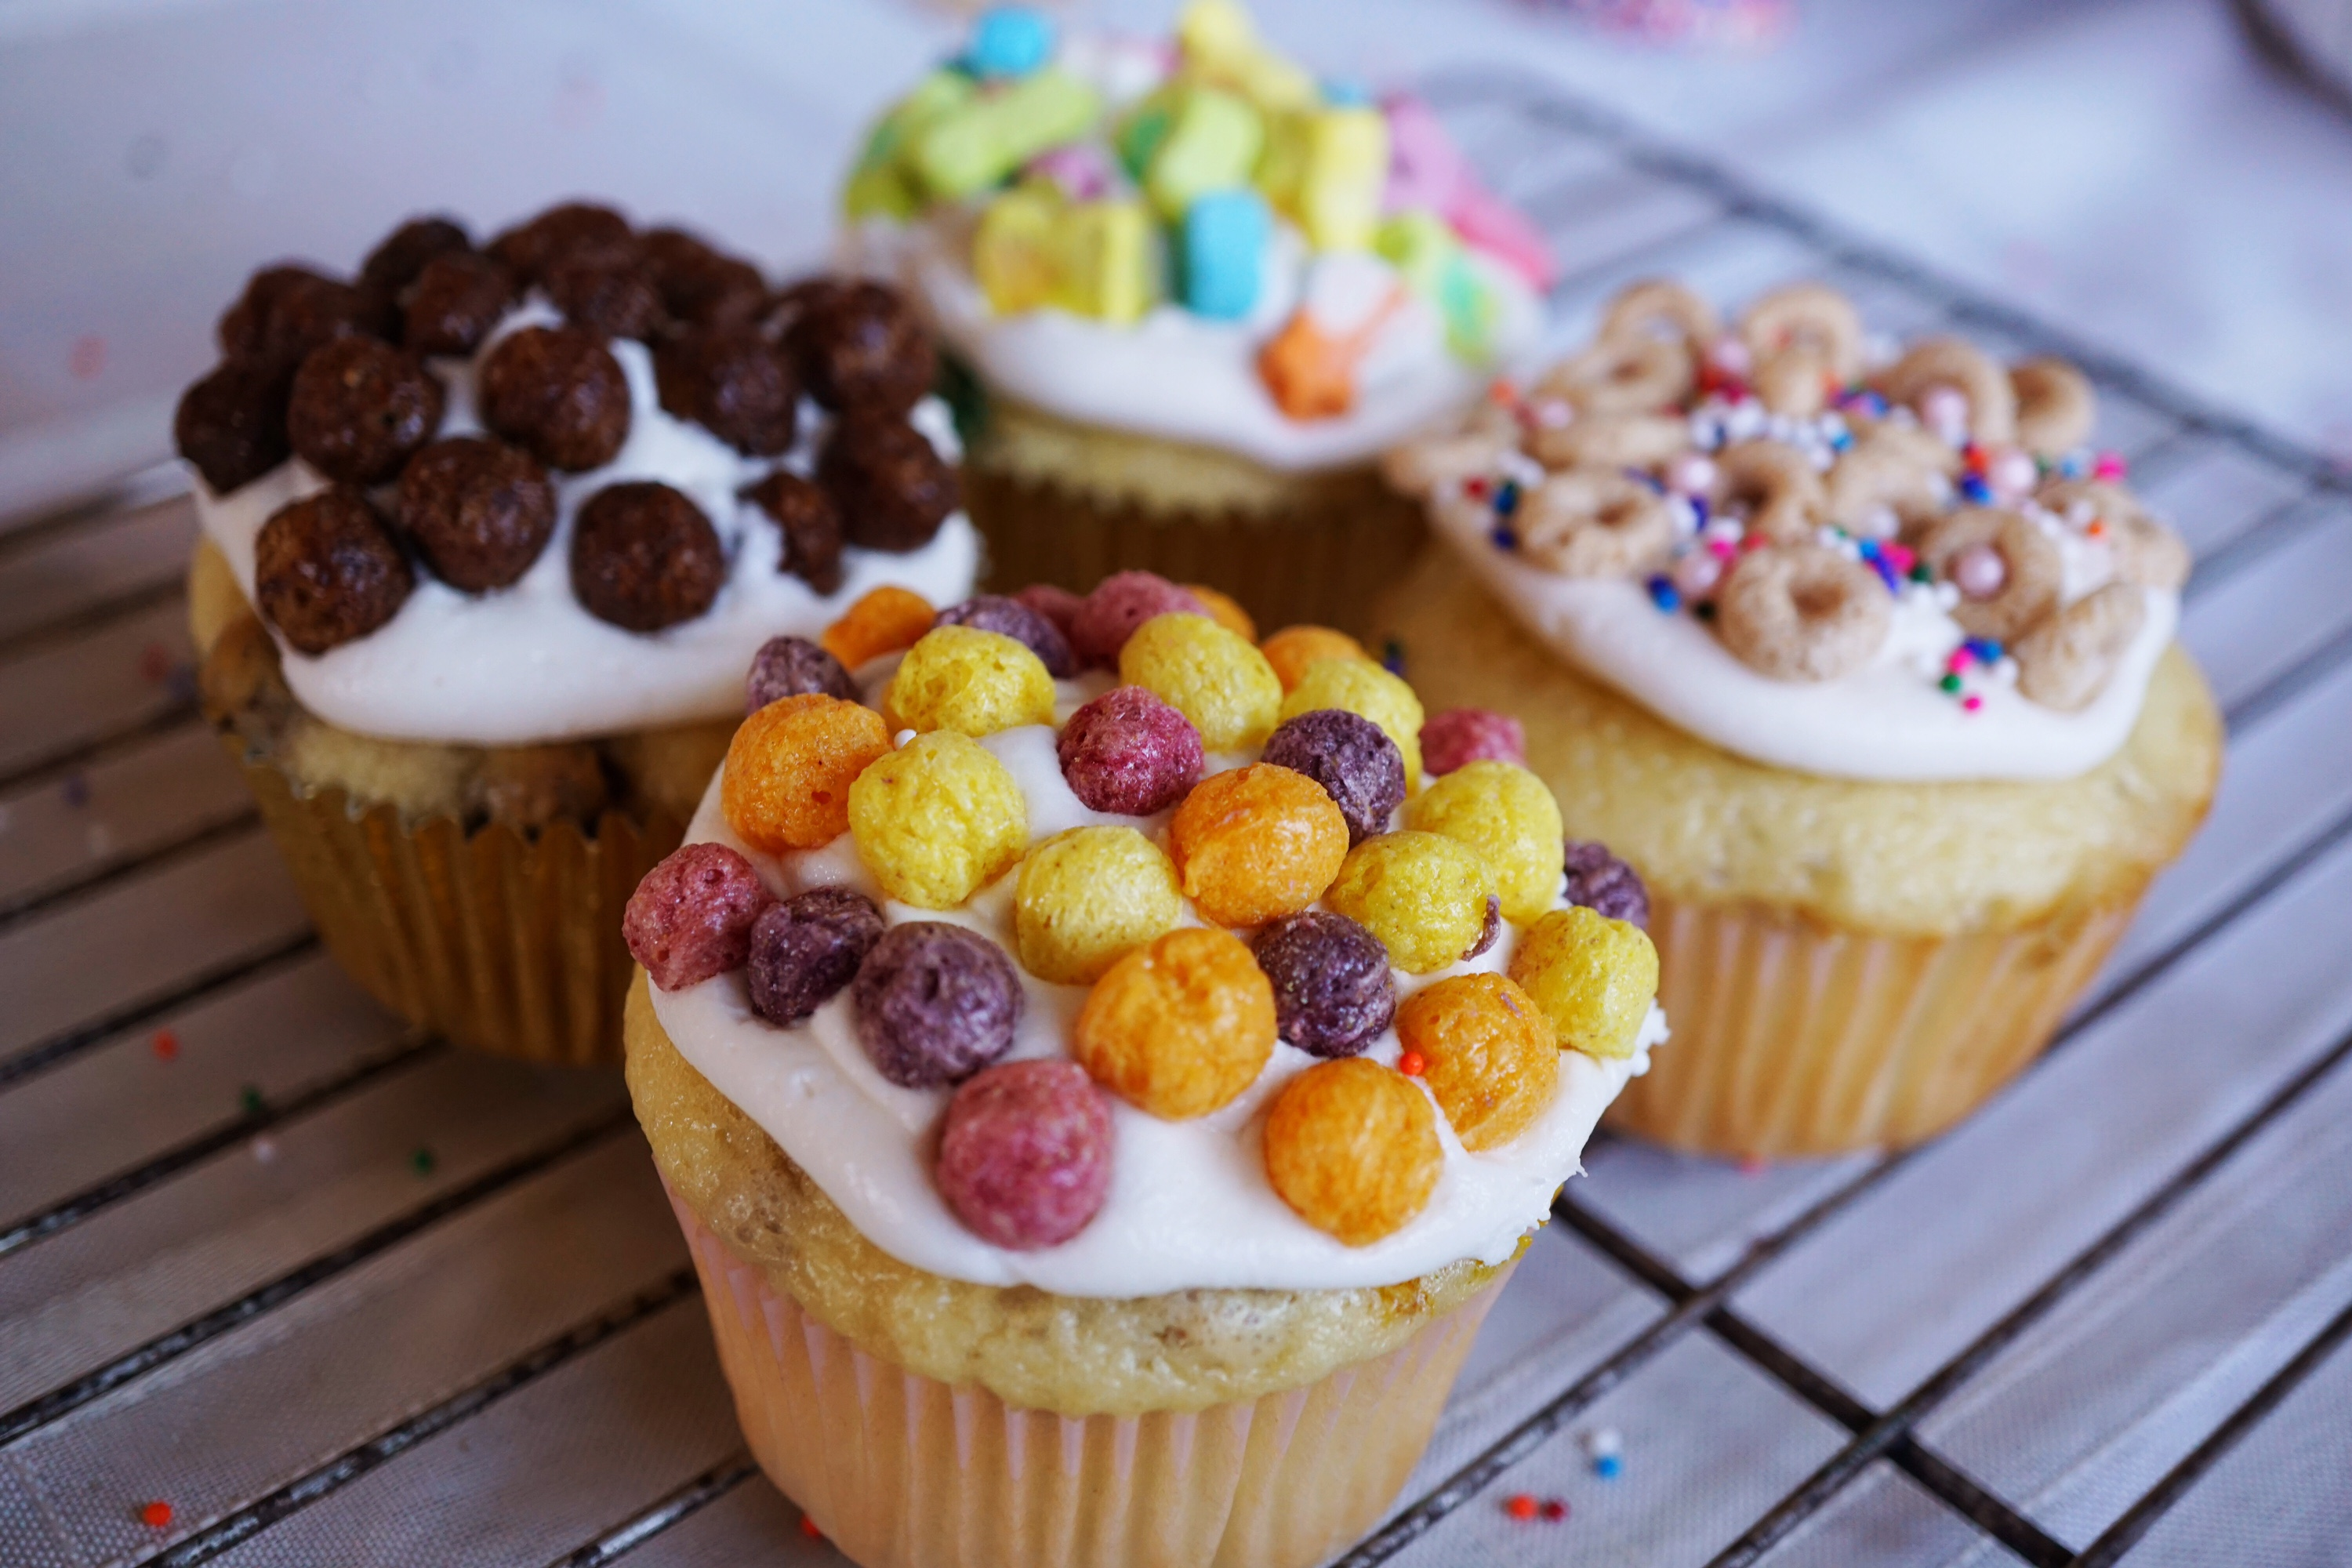 Its Children's Day: Let's Celebrate El Dia del Niño With Cereal Cupcakes